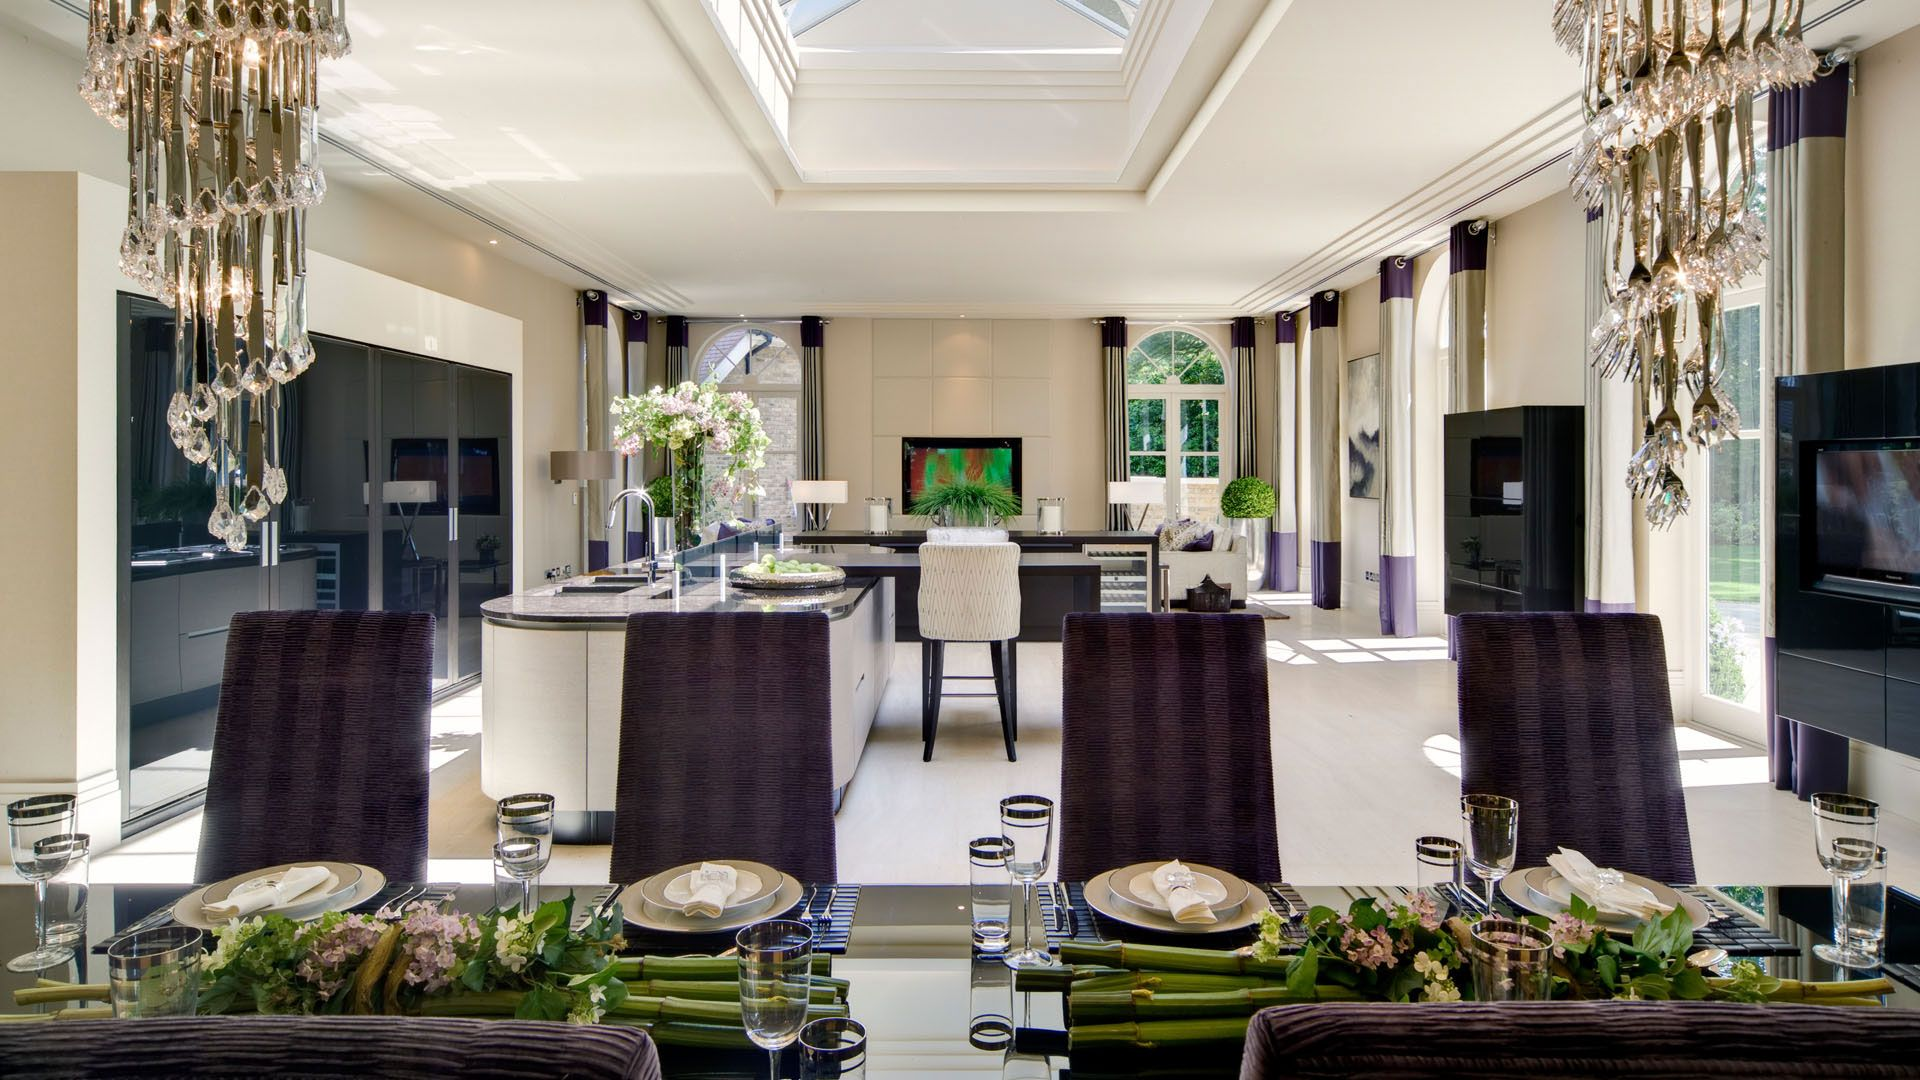 Granville Road   St Georgeu0027s Hill, UK Project, Interior Design Portfolio,  Hill House Interiors Are A London Based Interior Design Company With A  Showroom In ...